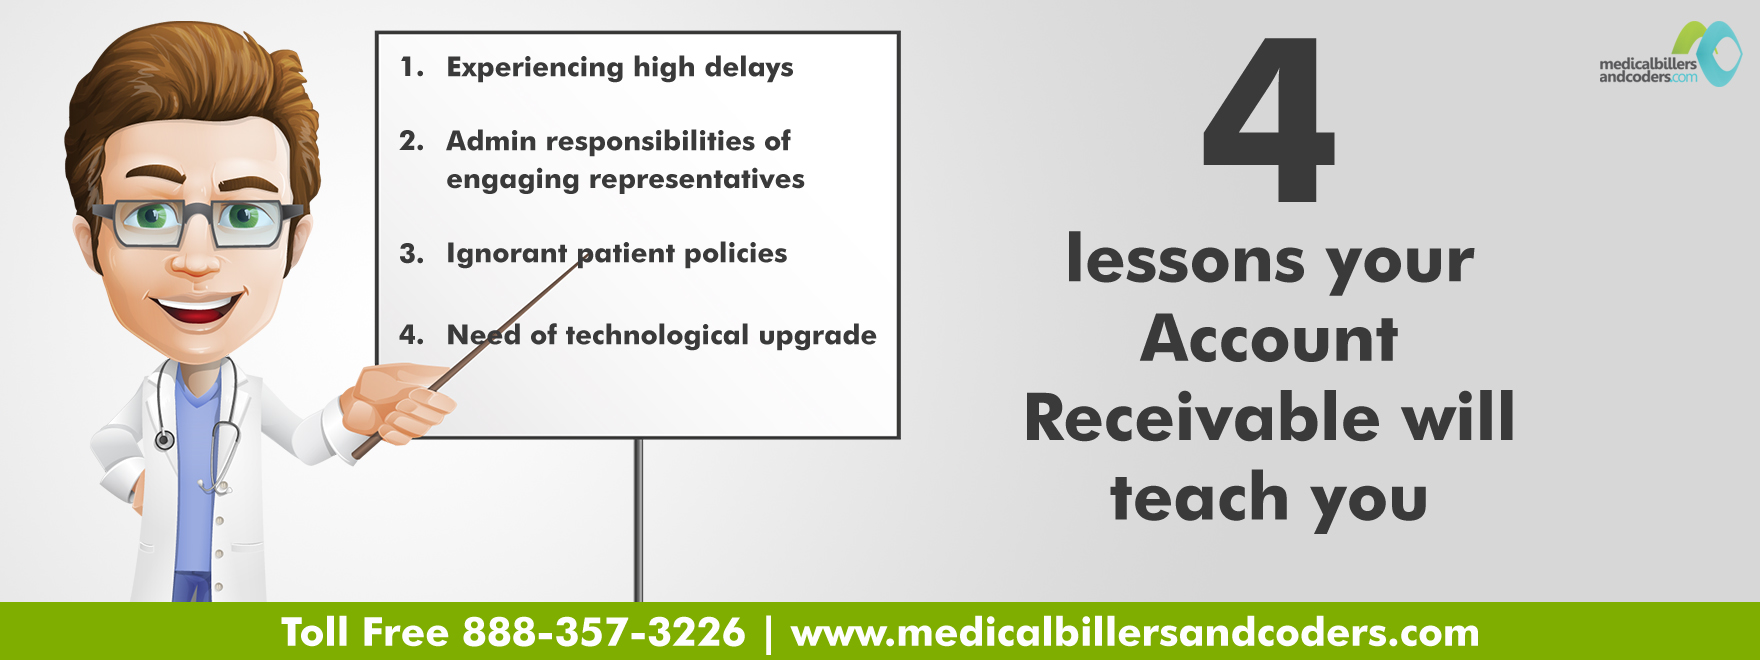 4-lessons-your-account-receivable-will-teach-you